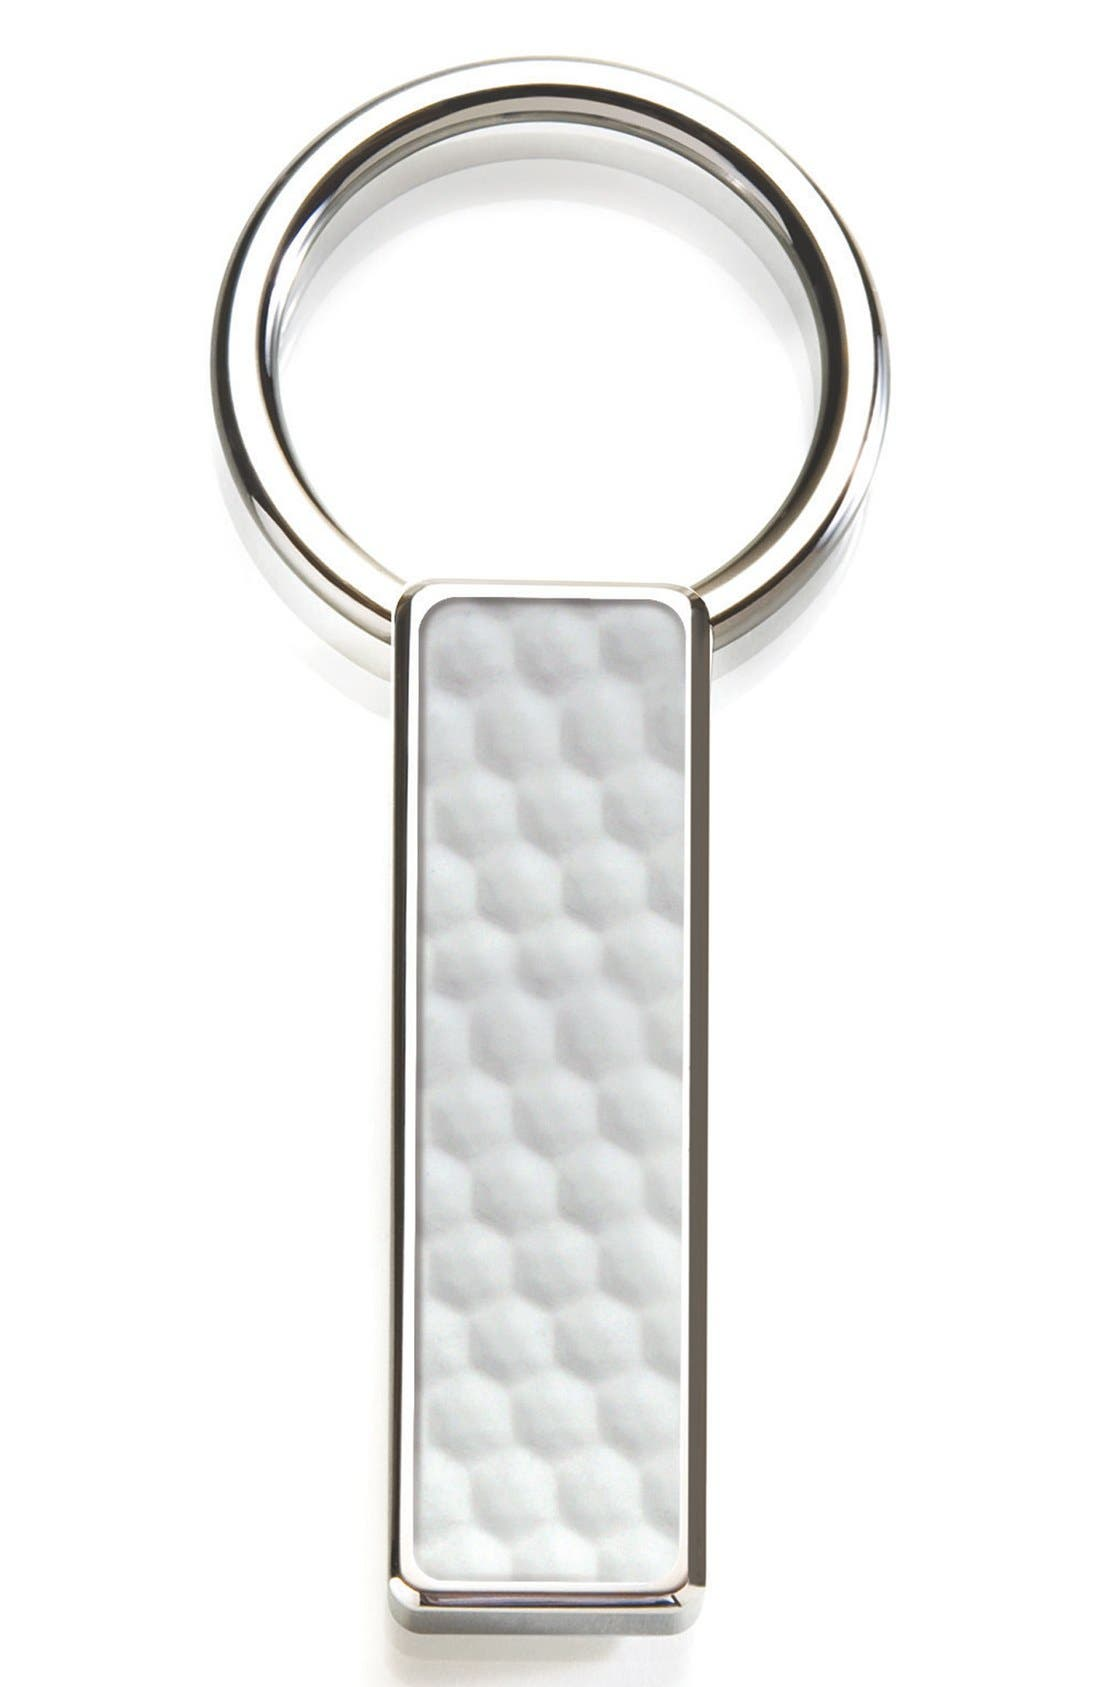 M-Clip® Golf Ball Key Ring